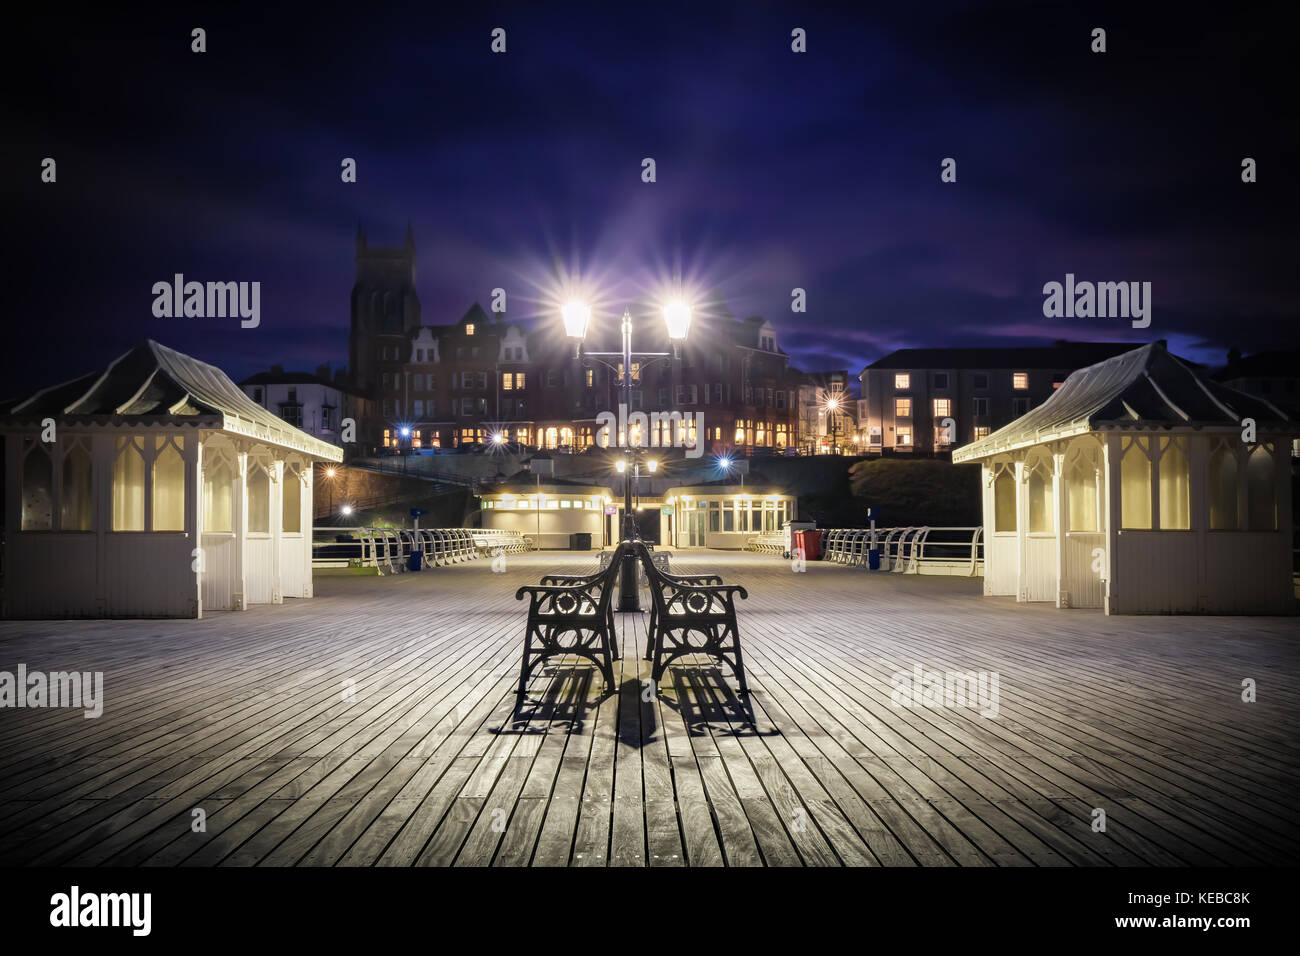 Cromer has one of the best, and flourishing, piers in England and the only surviving end of pier show in Europe. - Stock Image